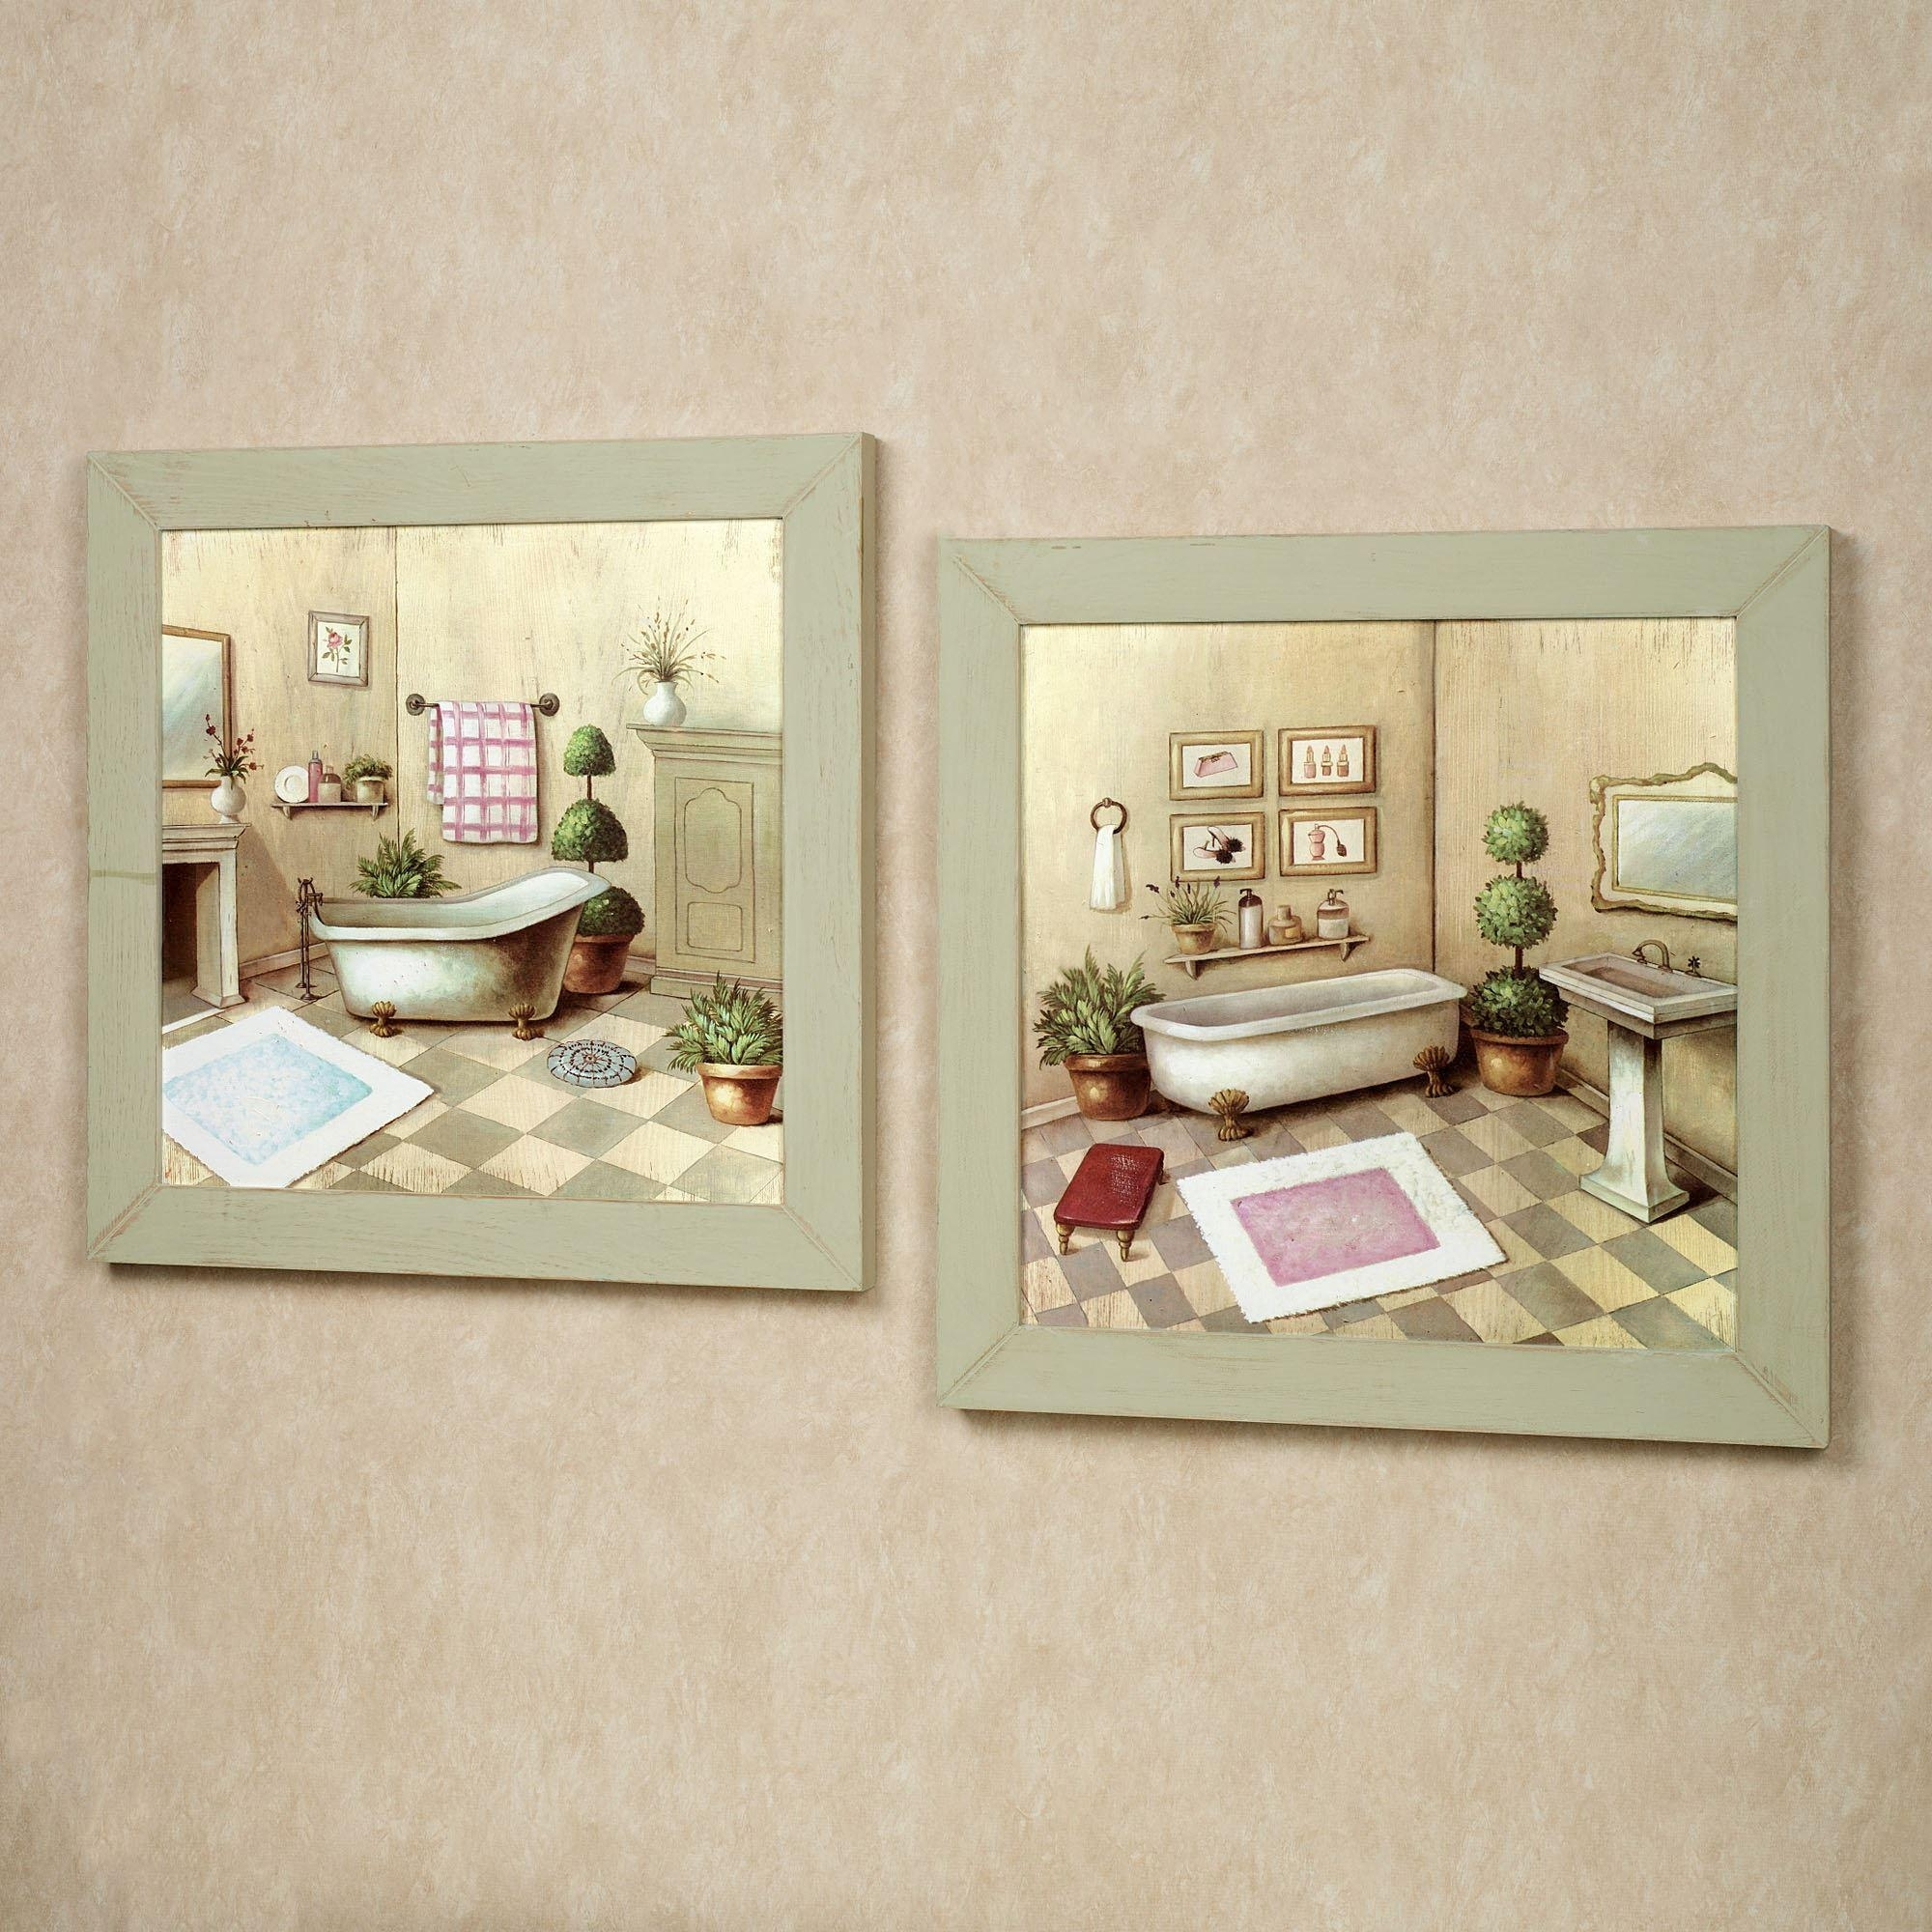 Wall Art: Awesome Bathroom Canvas Art Art For The Bathroom Throughout Glamorous Bathroom Wall Art (View 15 of 20)